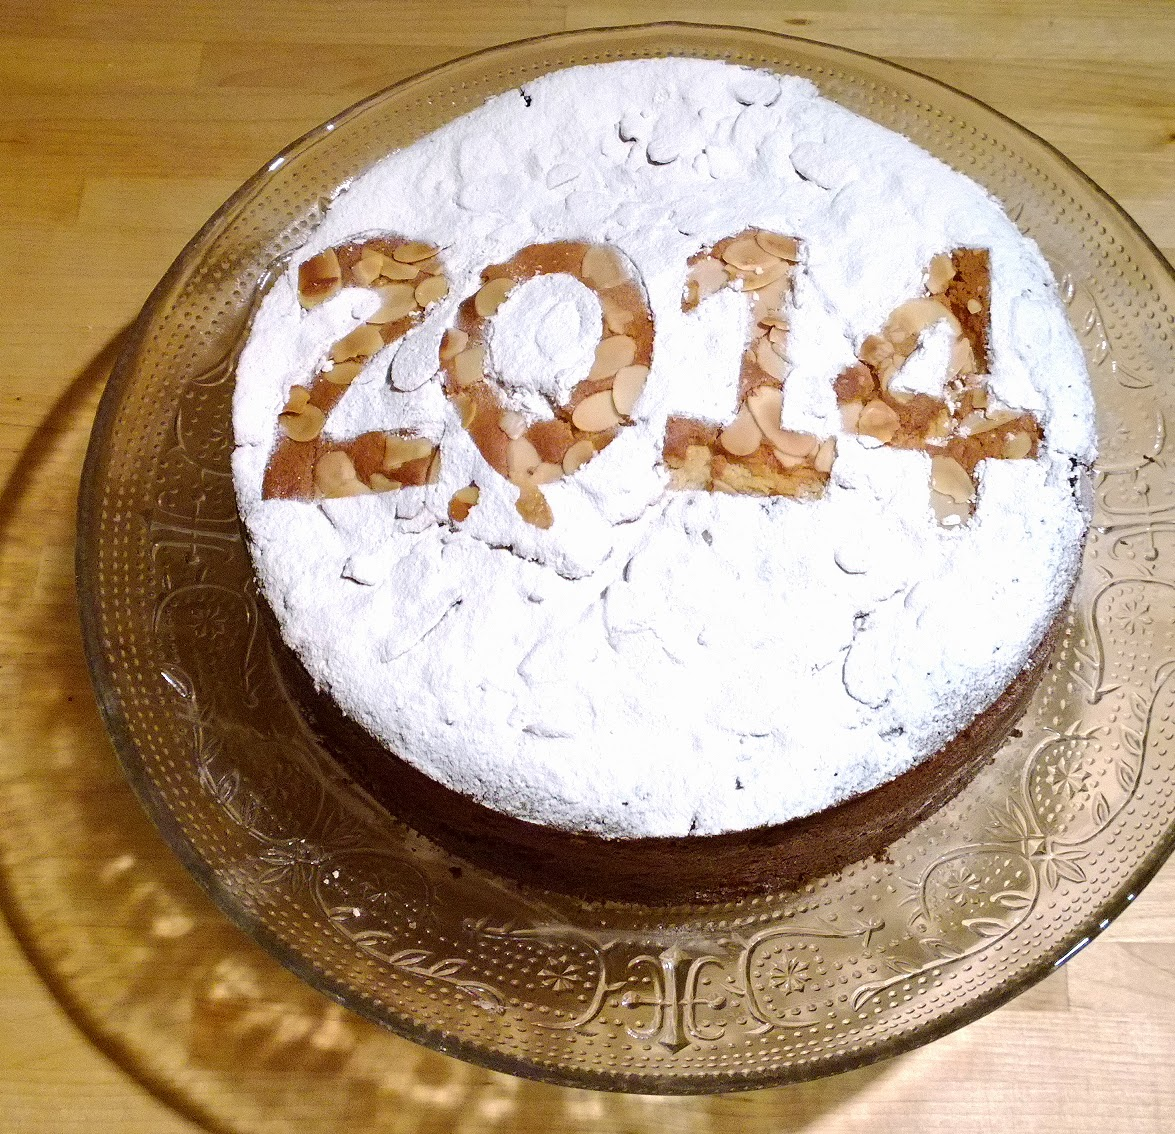 Charlie makes cakes: Vasilopita – Greek New Year's Eve Cake